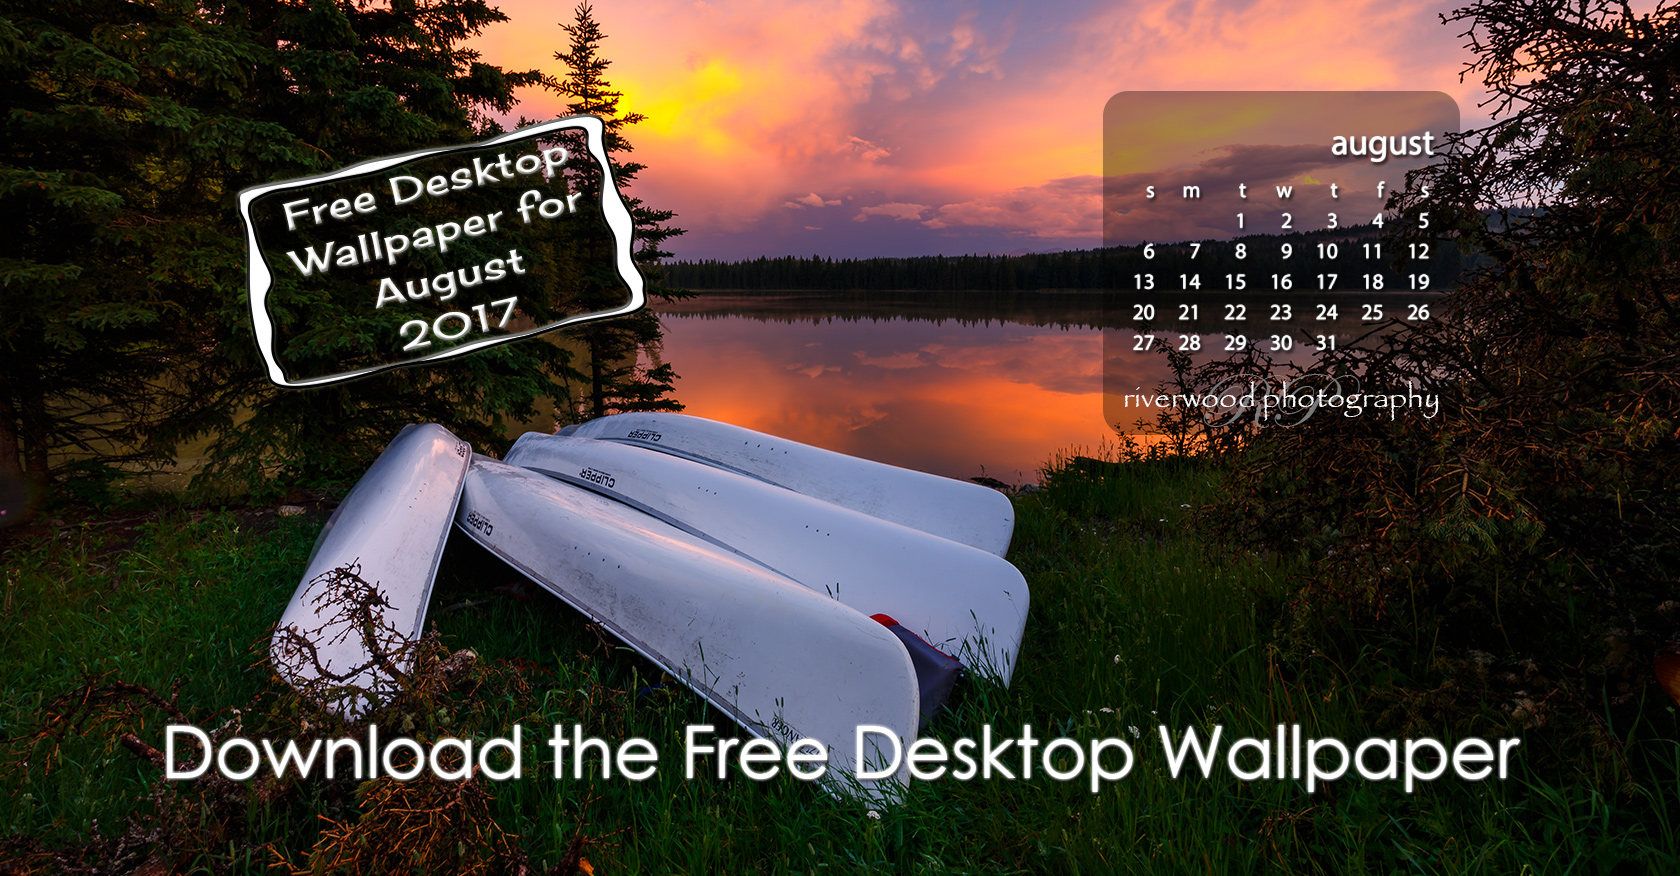 Free Desktop Wallpaper for August 2017